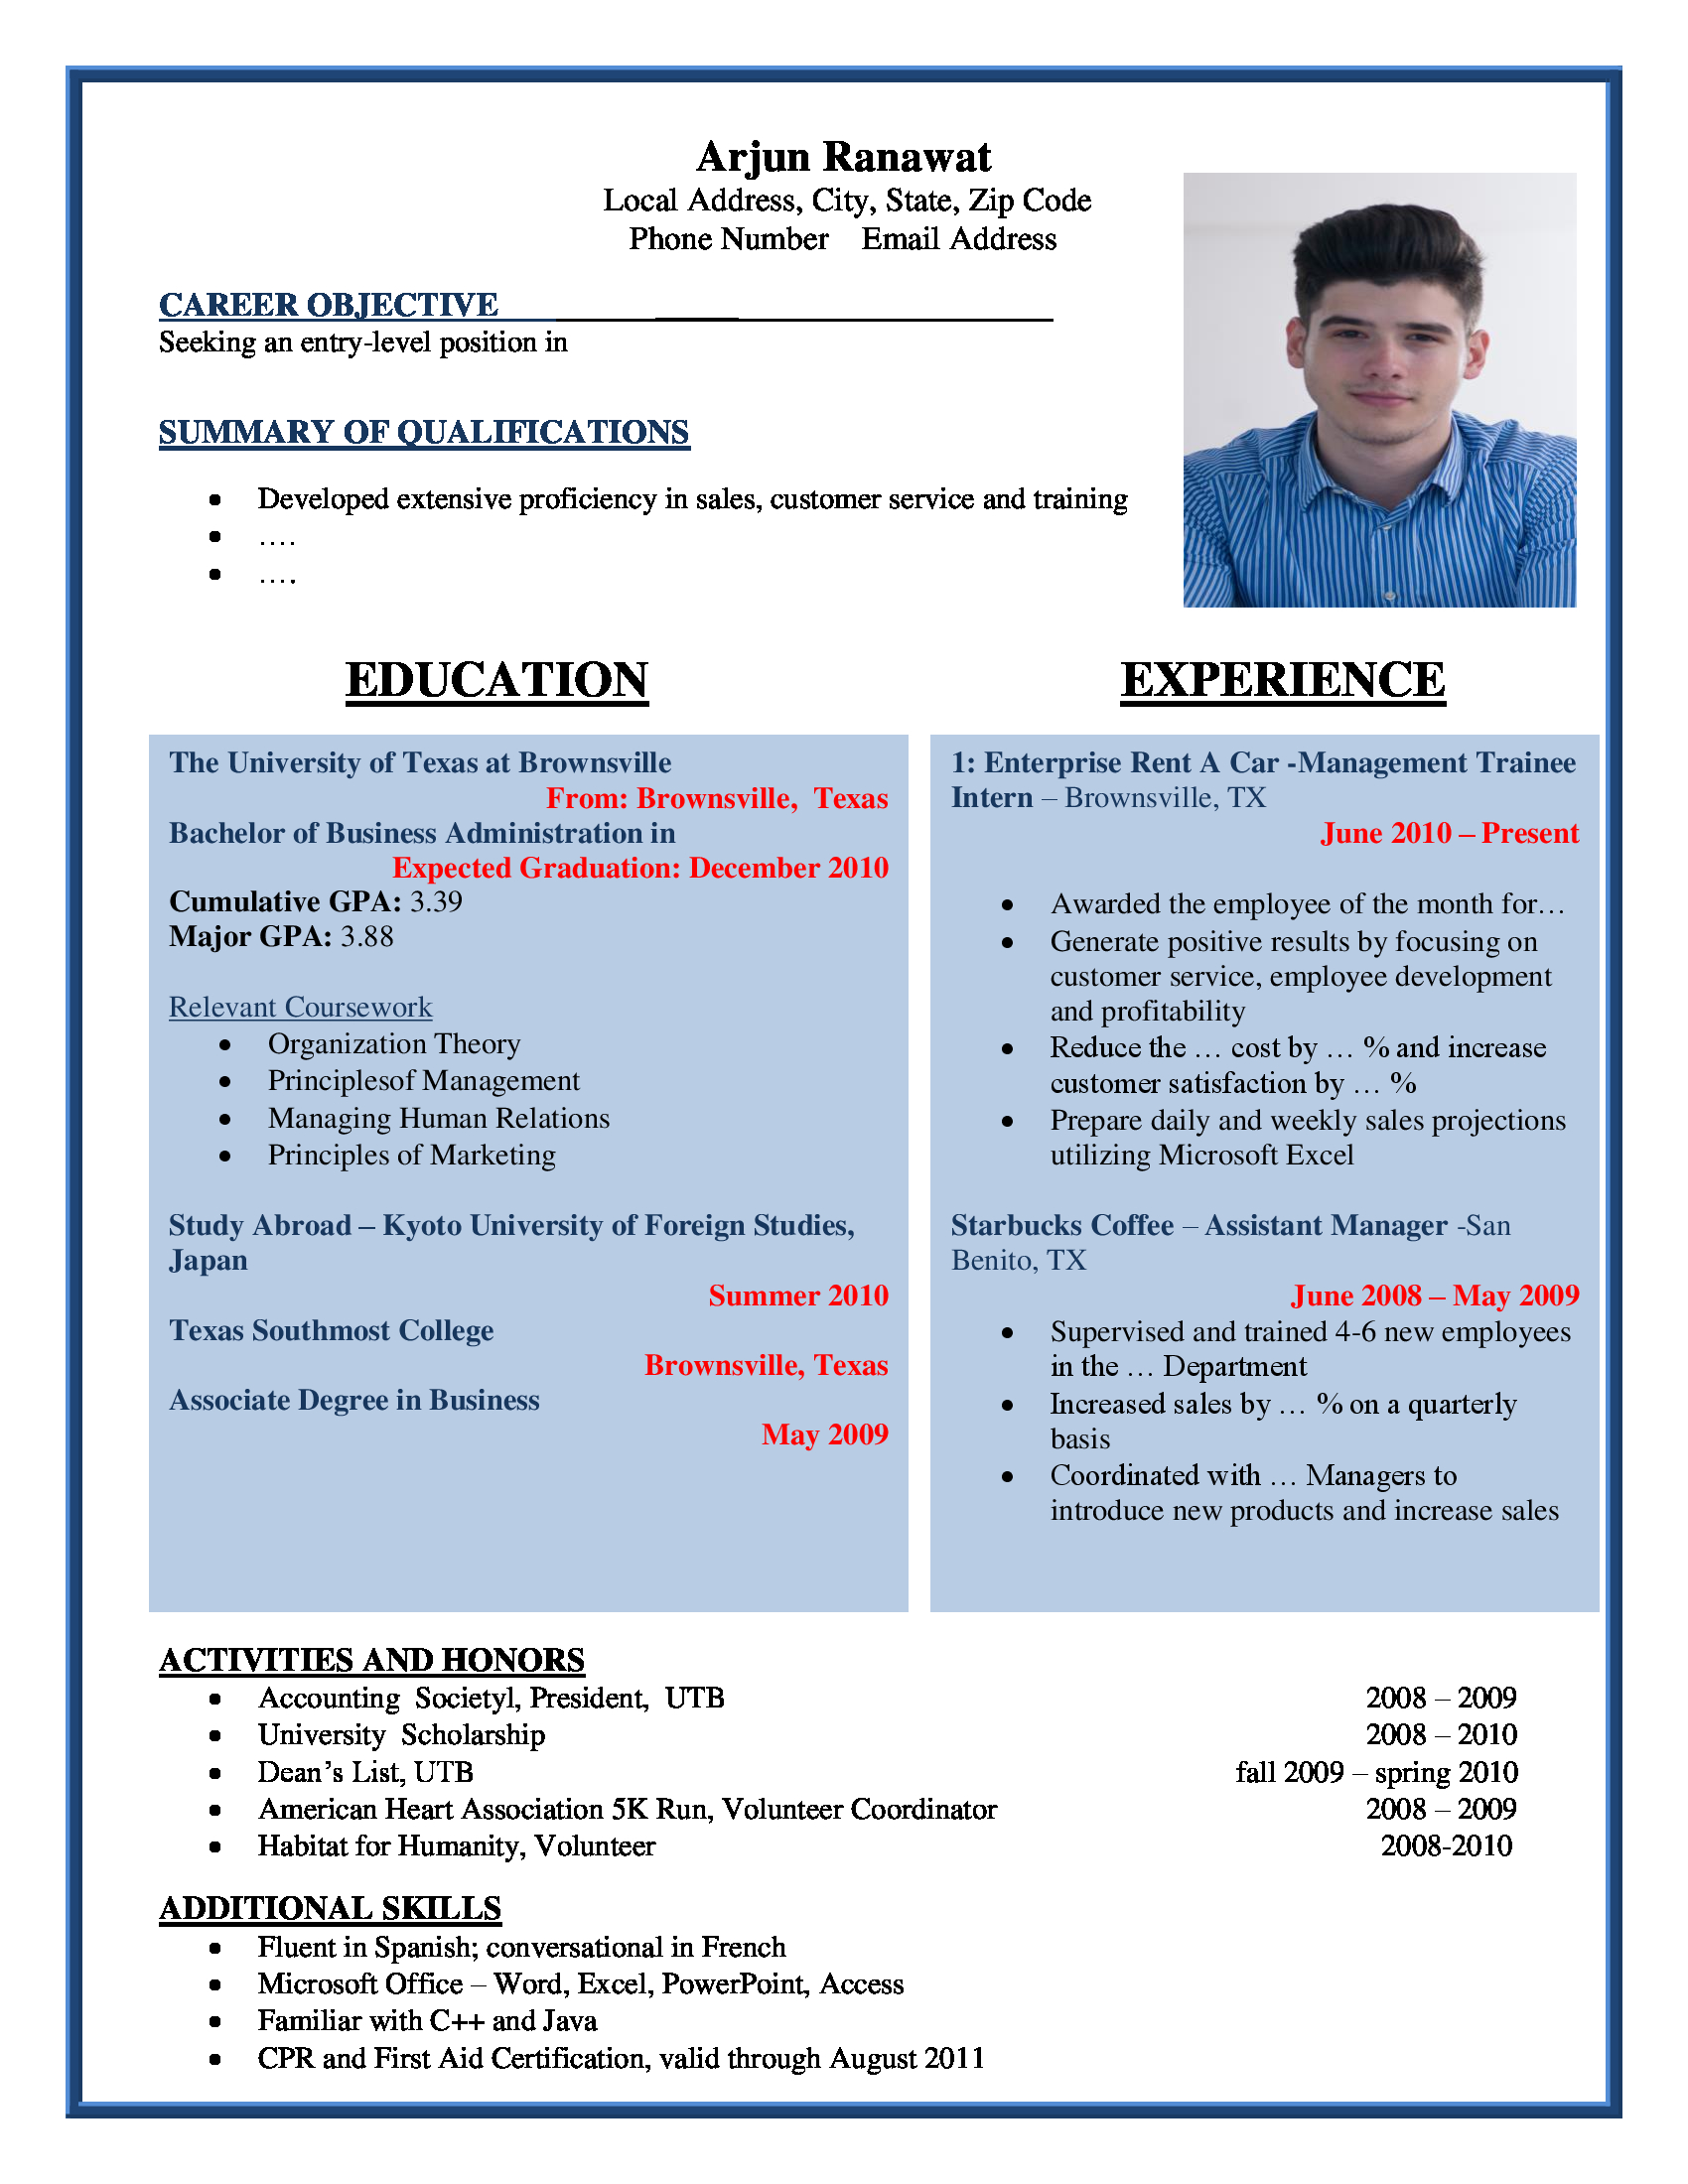 Free Resume Update Services Seo Executive Resume Seo Executive Resume Format Seo